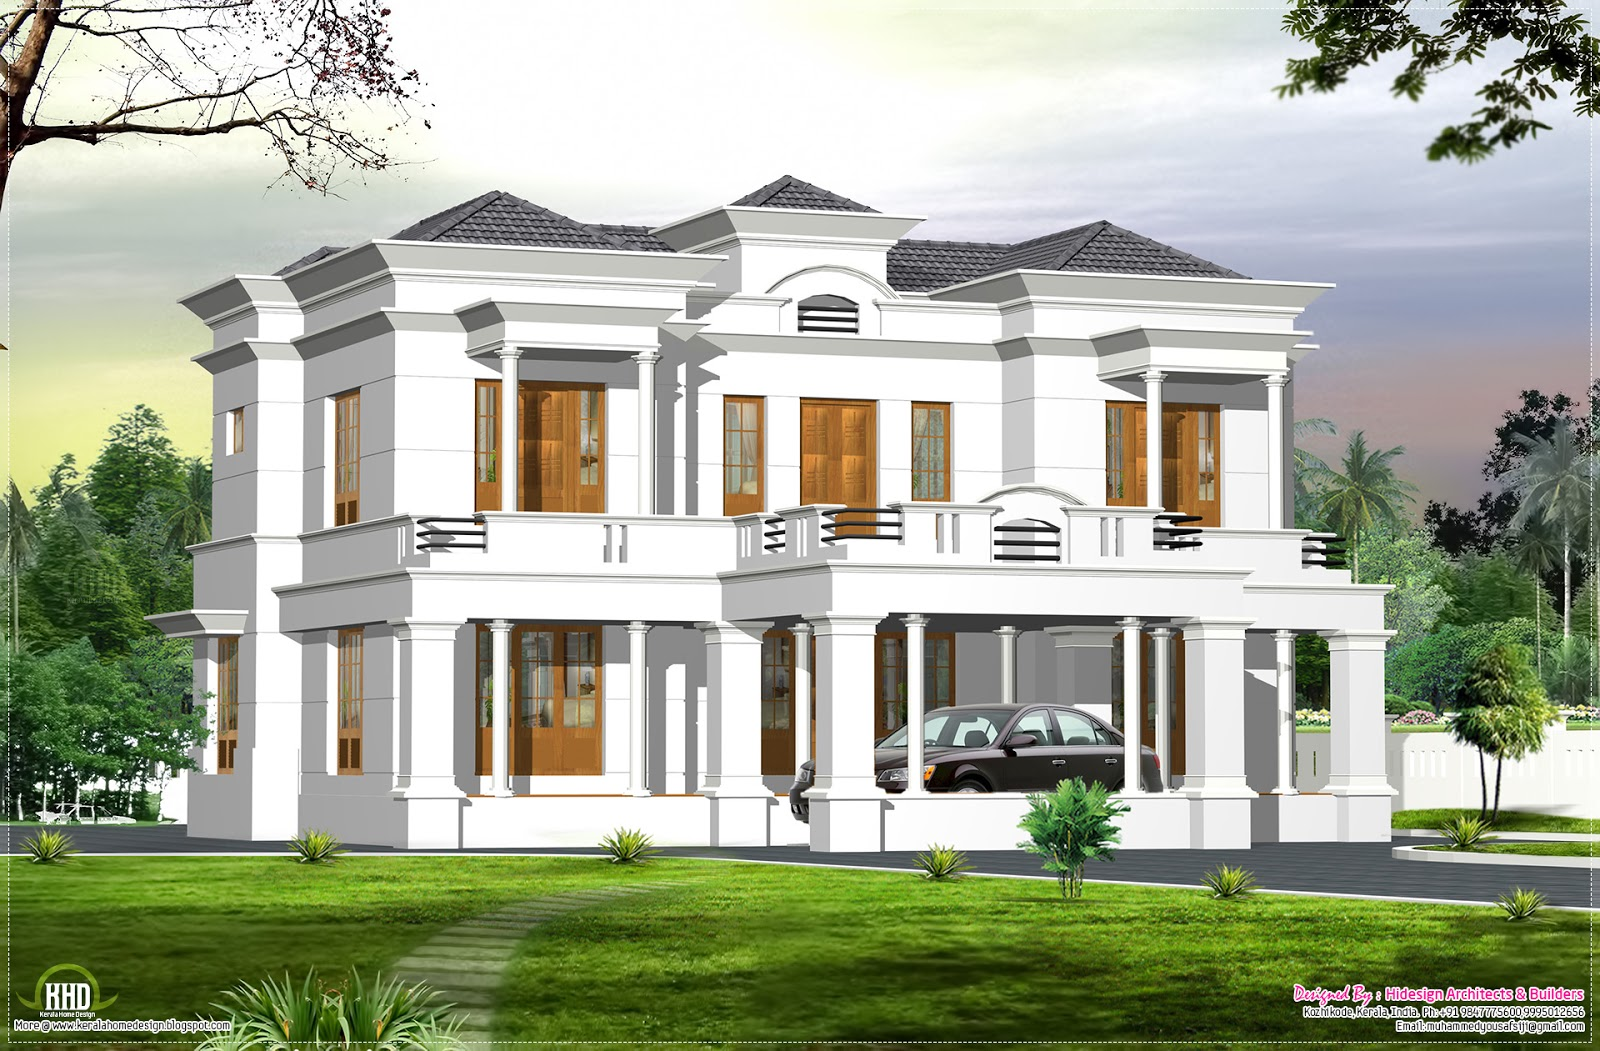 An english style 4 bedroom kerala bungalow home elevation for Bungalow plans and elevations